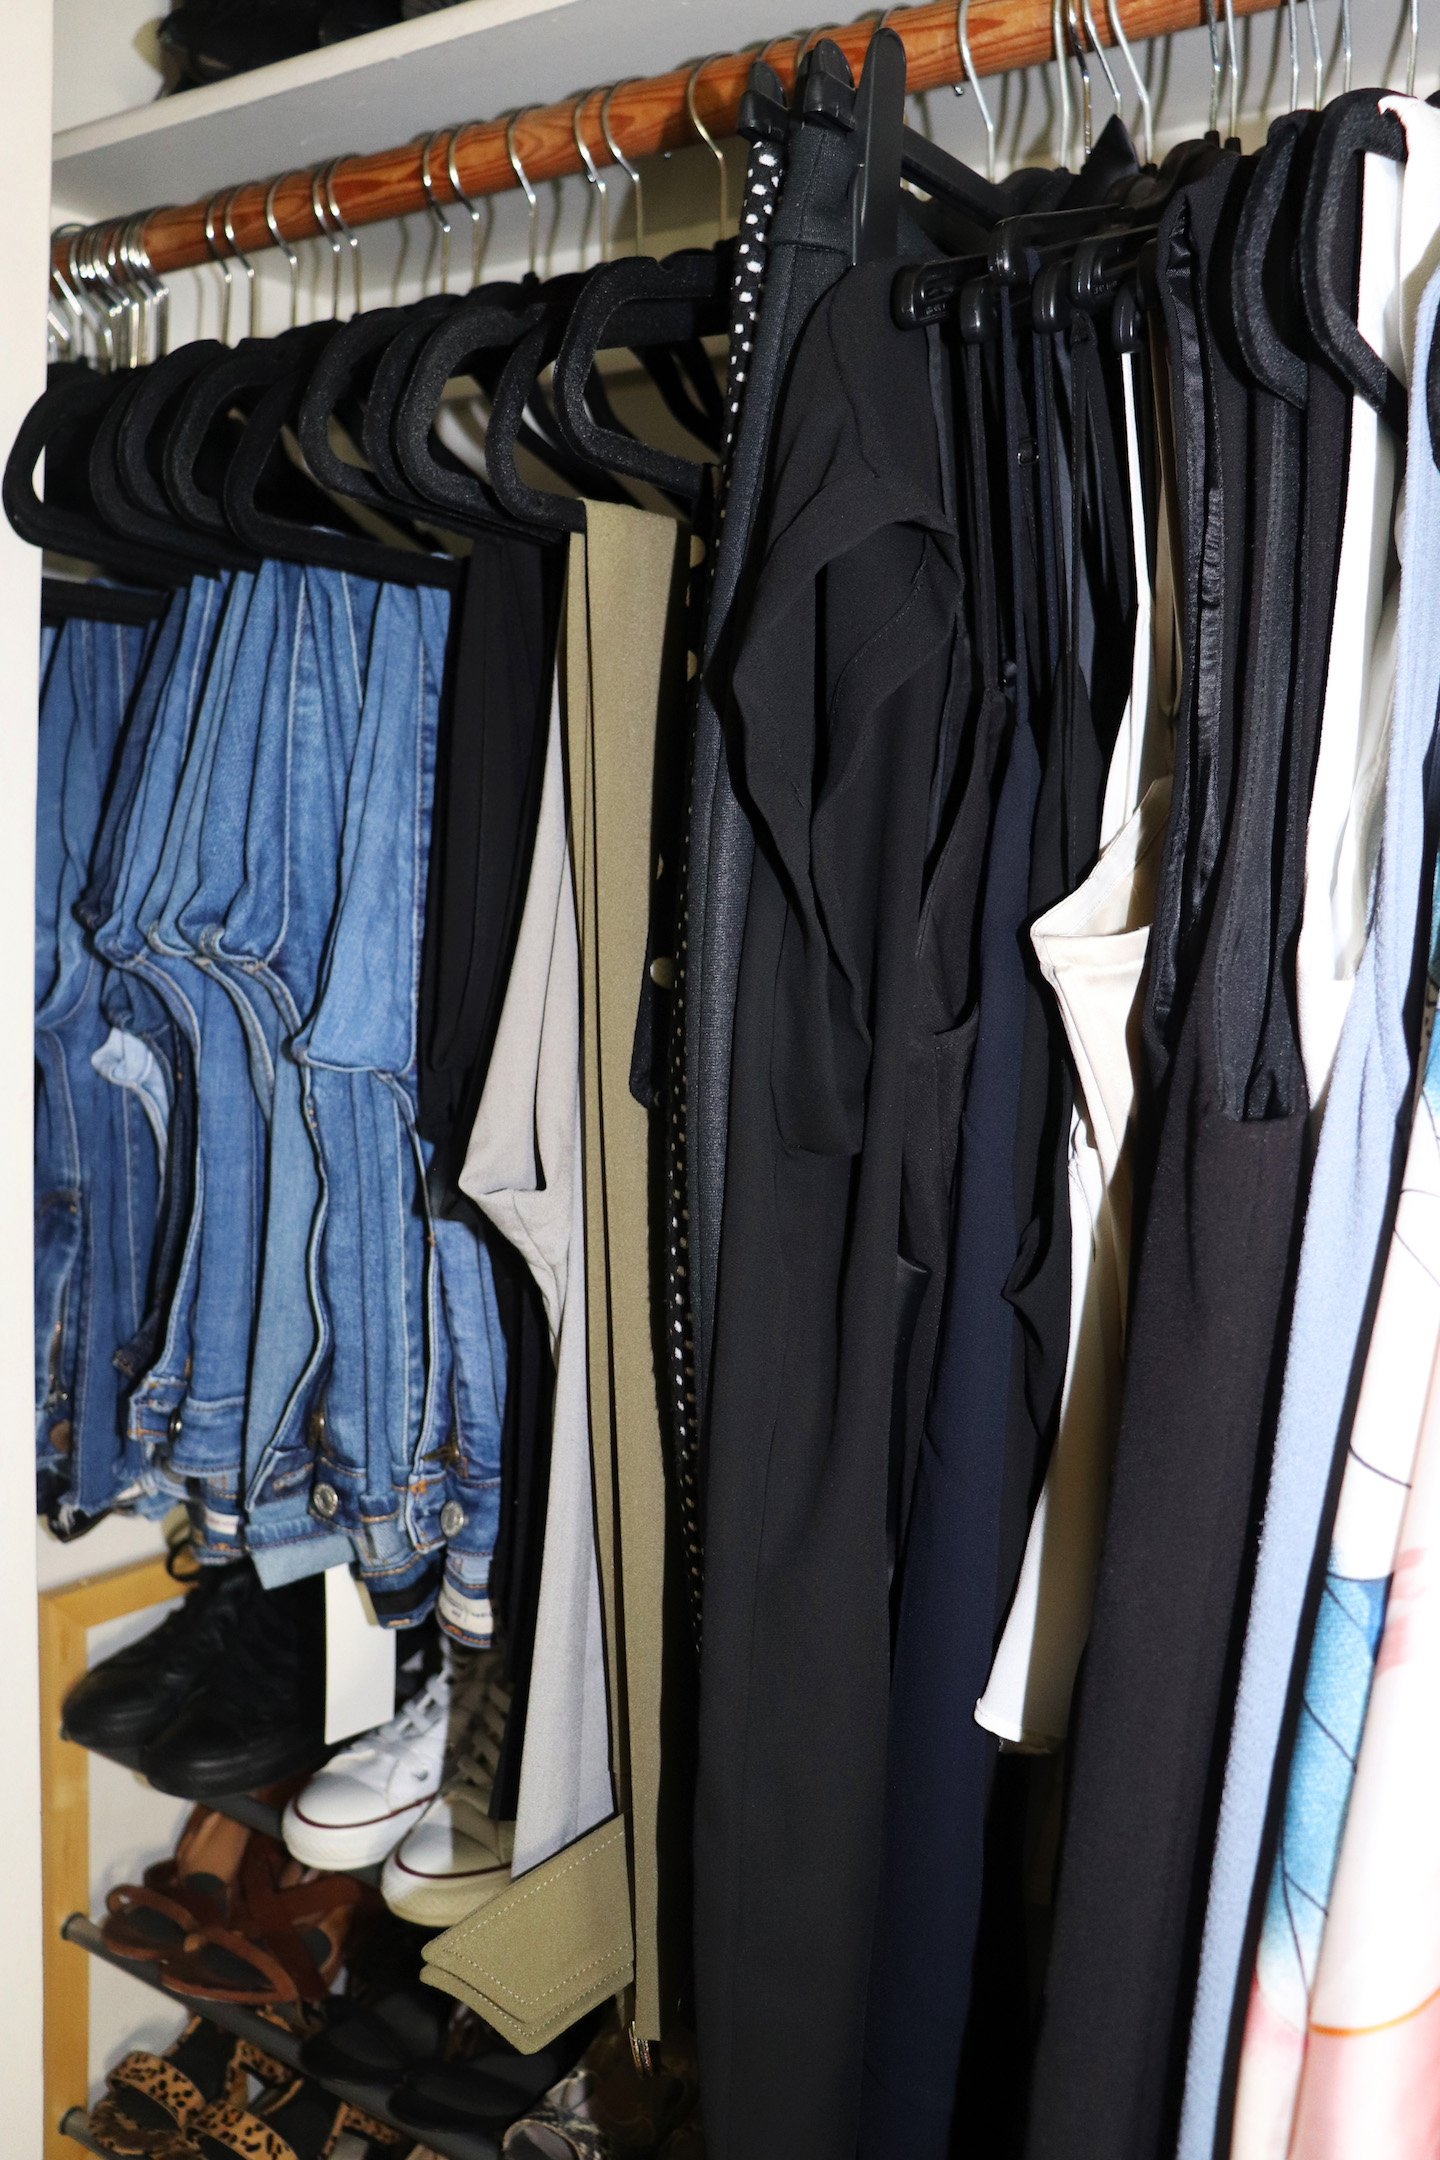 How To Organize Your Small NYC Closet